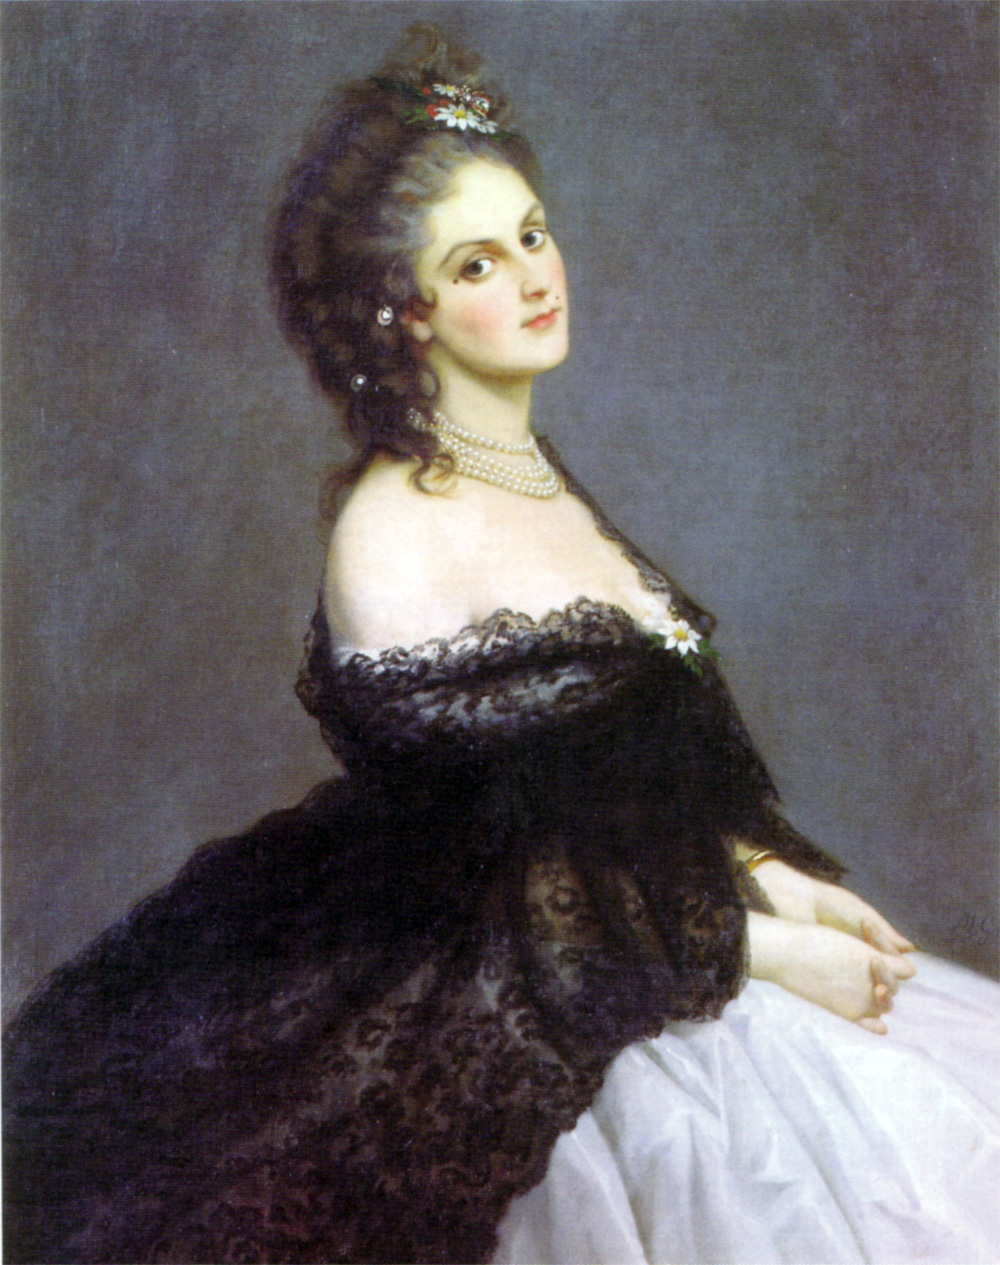 http://upload.wikimedia.org/wikipedia/commons/1/1e/Contessa_di_Castiglione.jpg